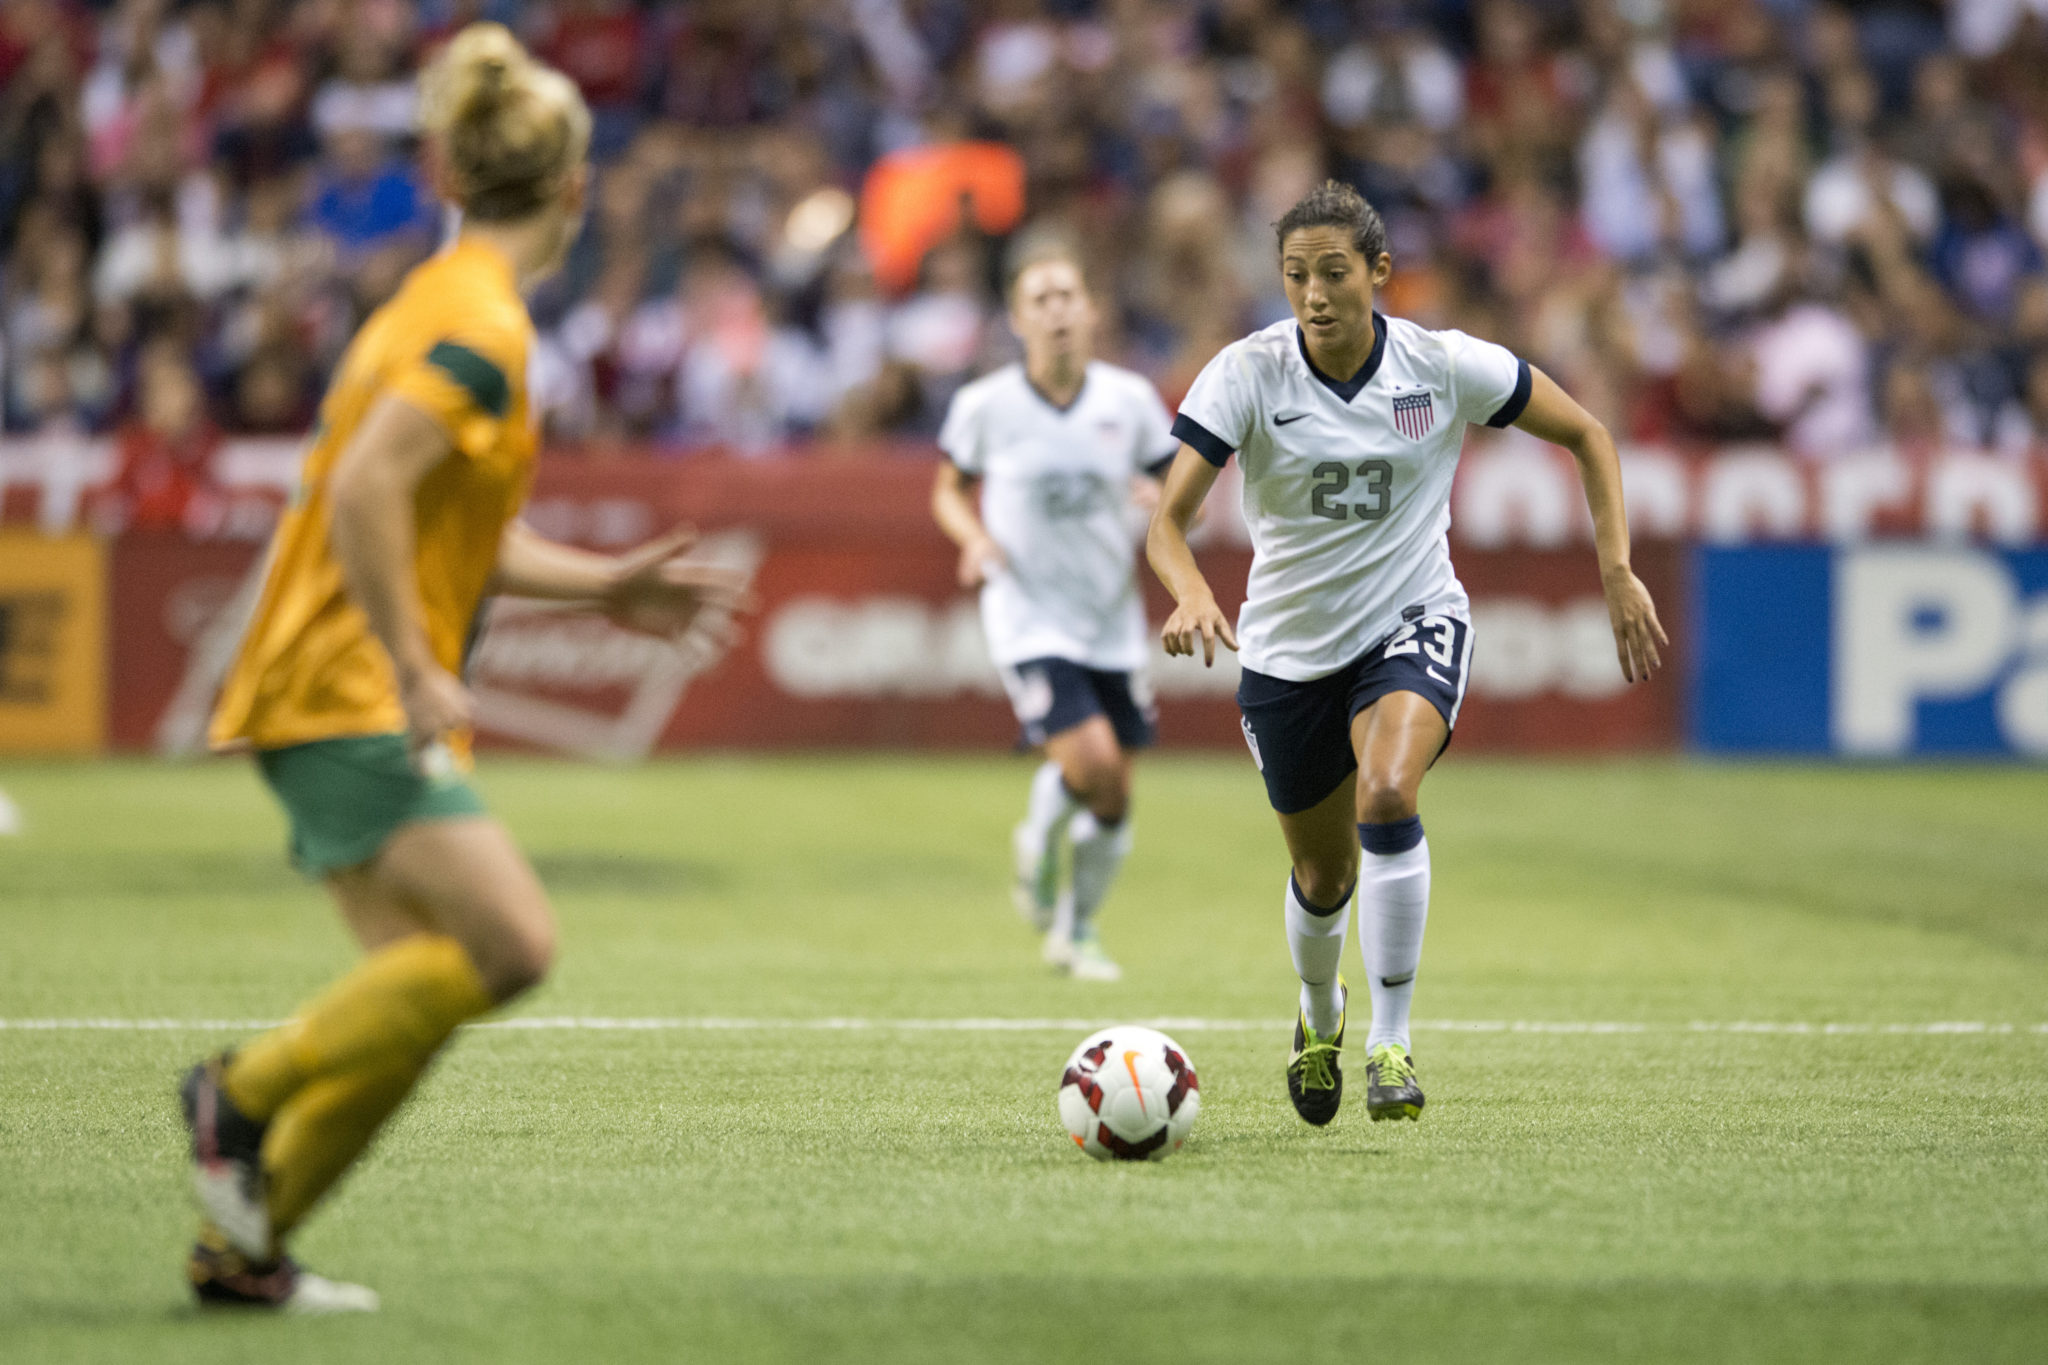 Christen Press says she may find her way to the NWSL sometime next year. (Getty Images)